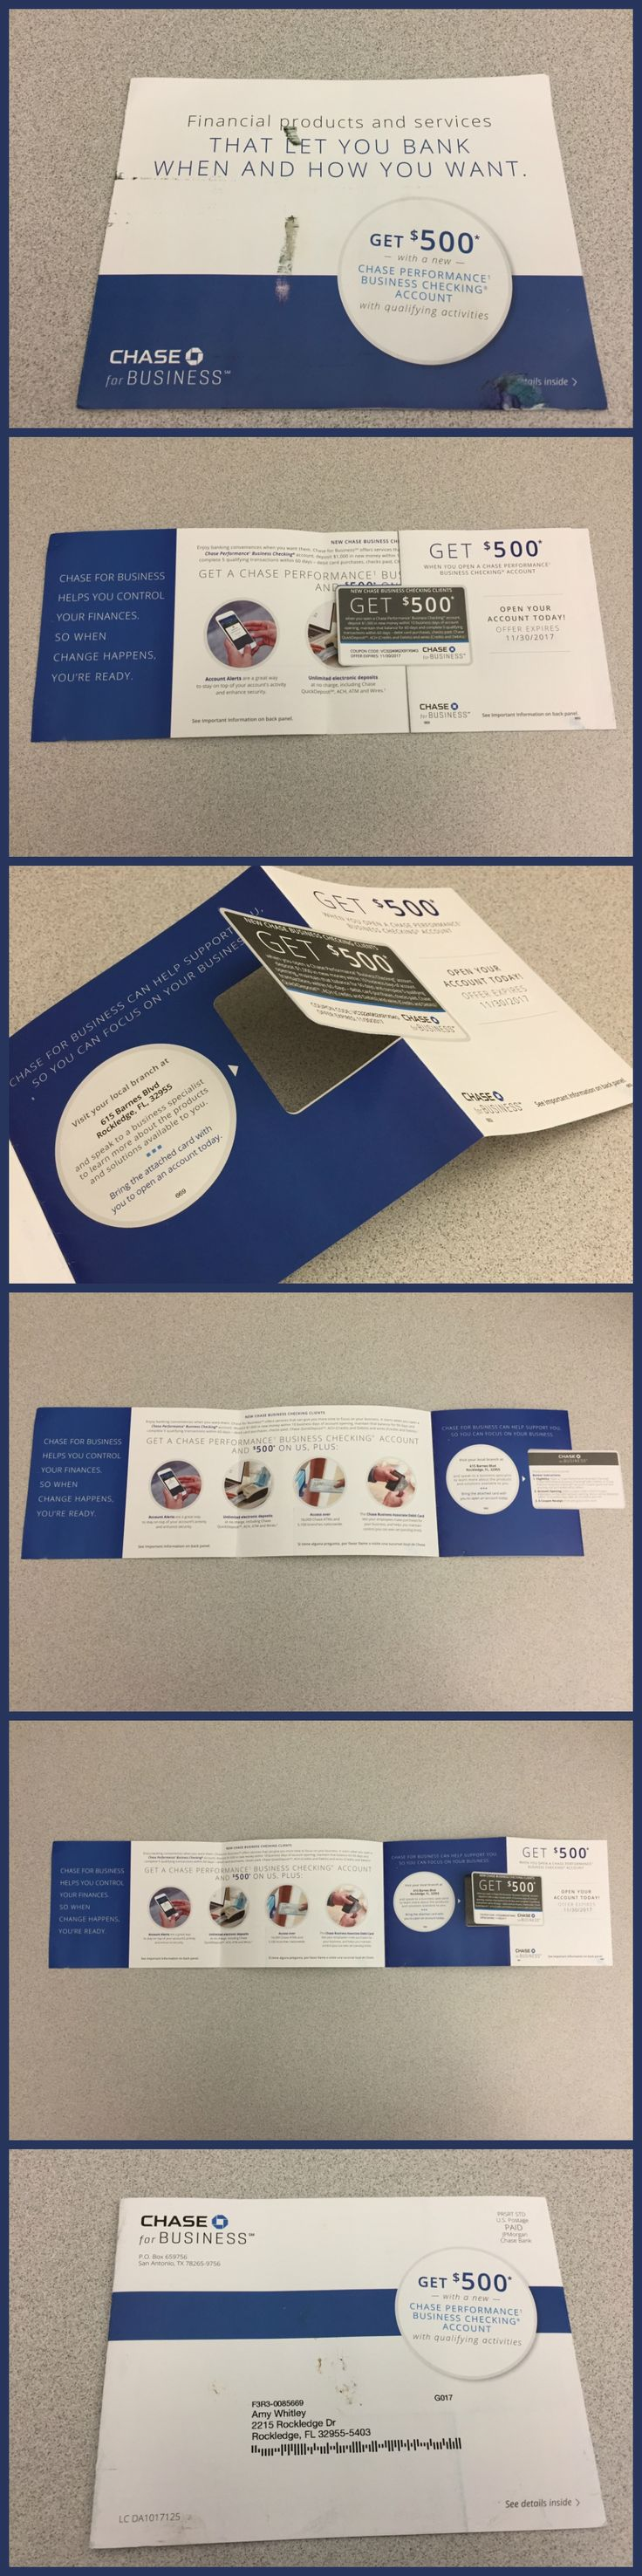 Chase Bank direct mail piece that features die cut window, perforated coupon and spot UV gloss coating.